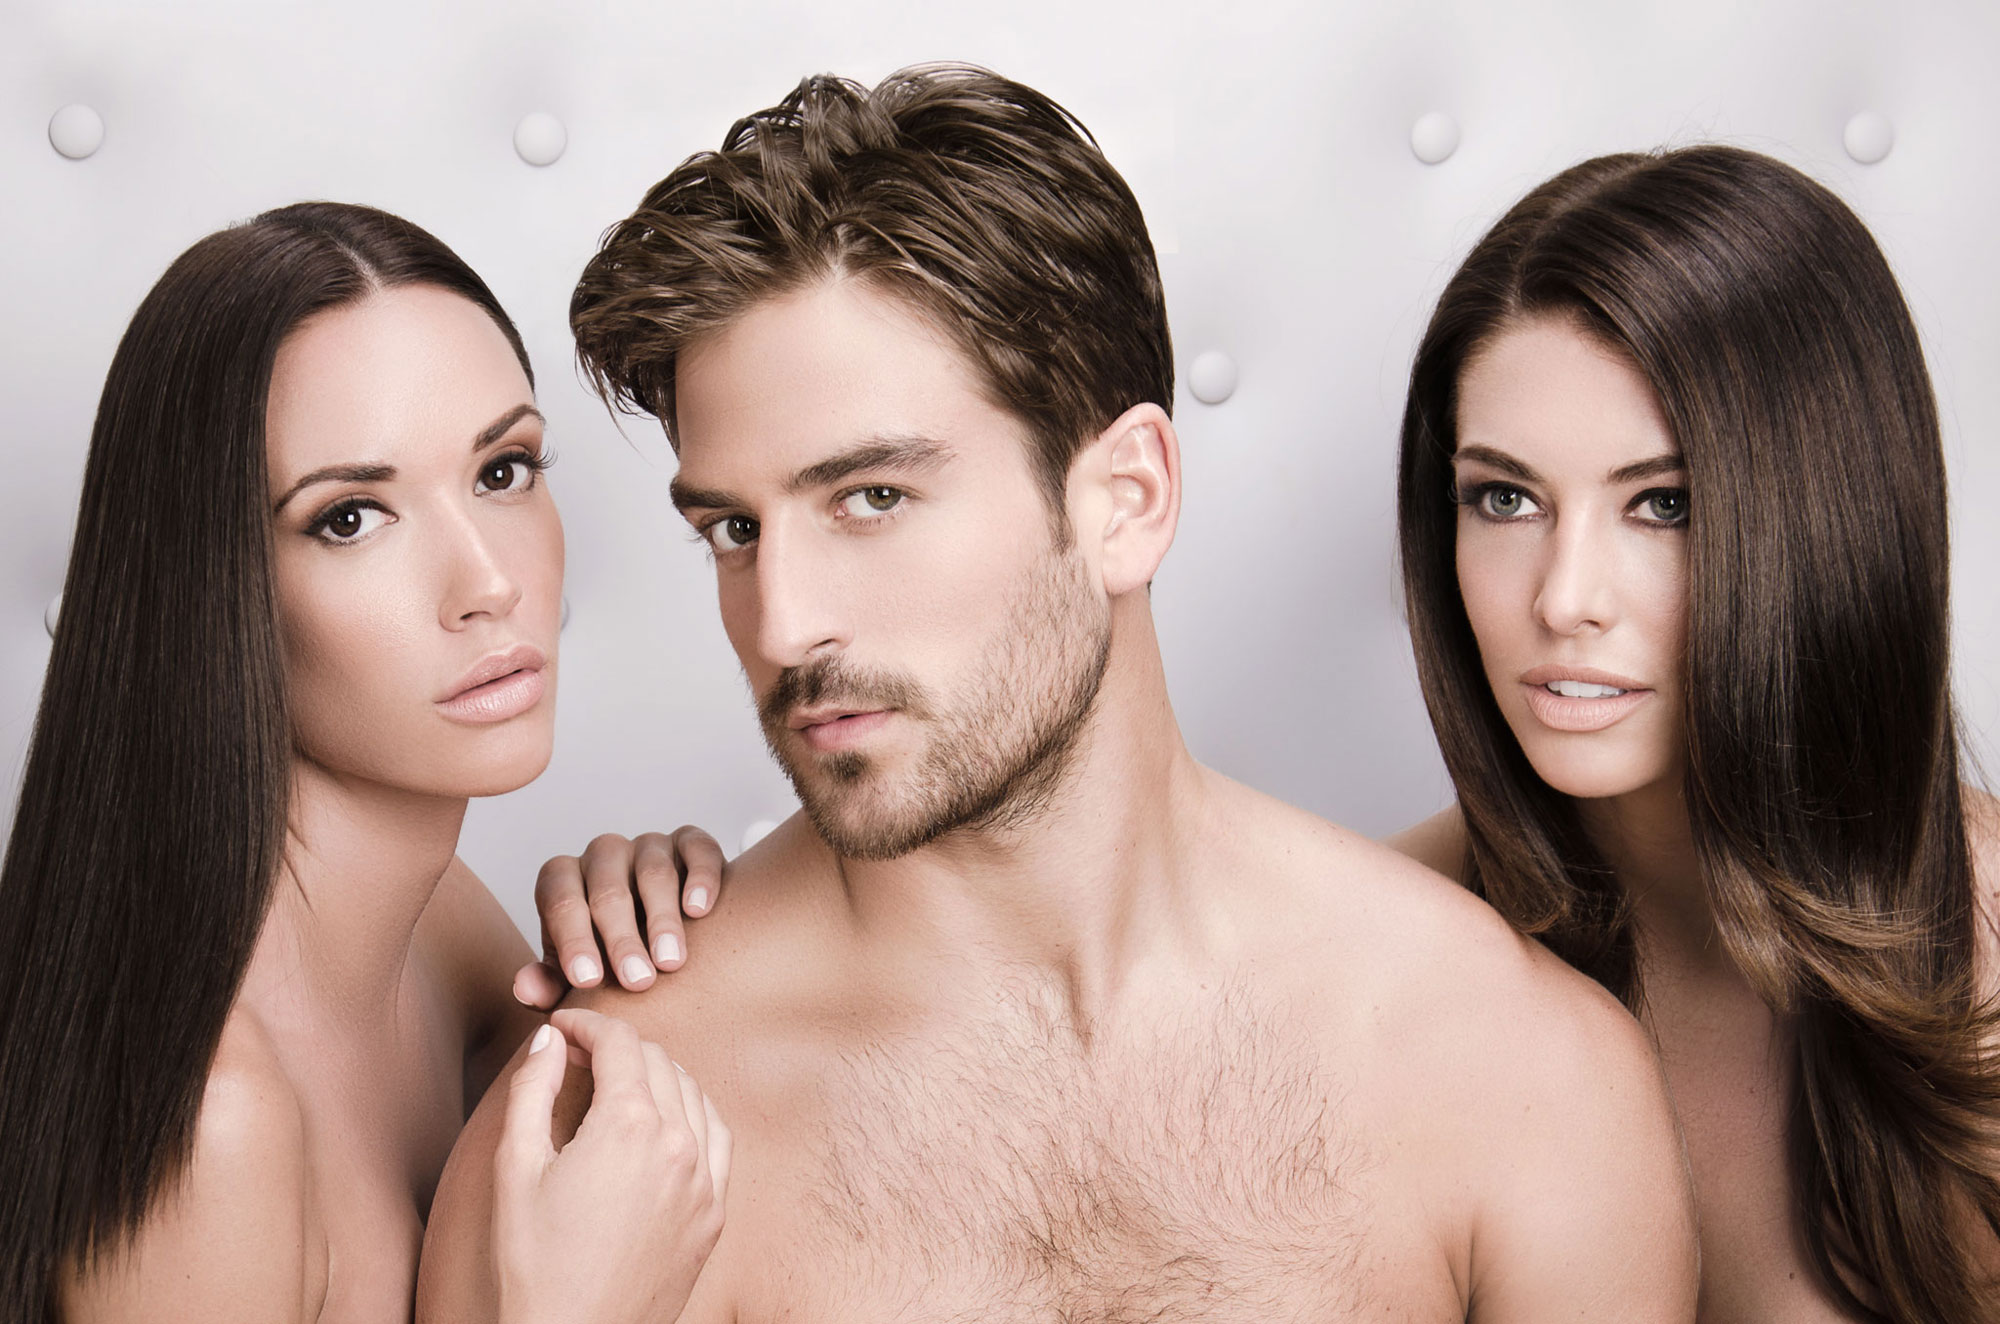 Salon Hair Best Hair Cut Salon Hair Color Wedding Celebrity Hair Stylist